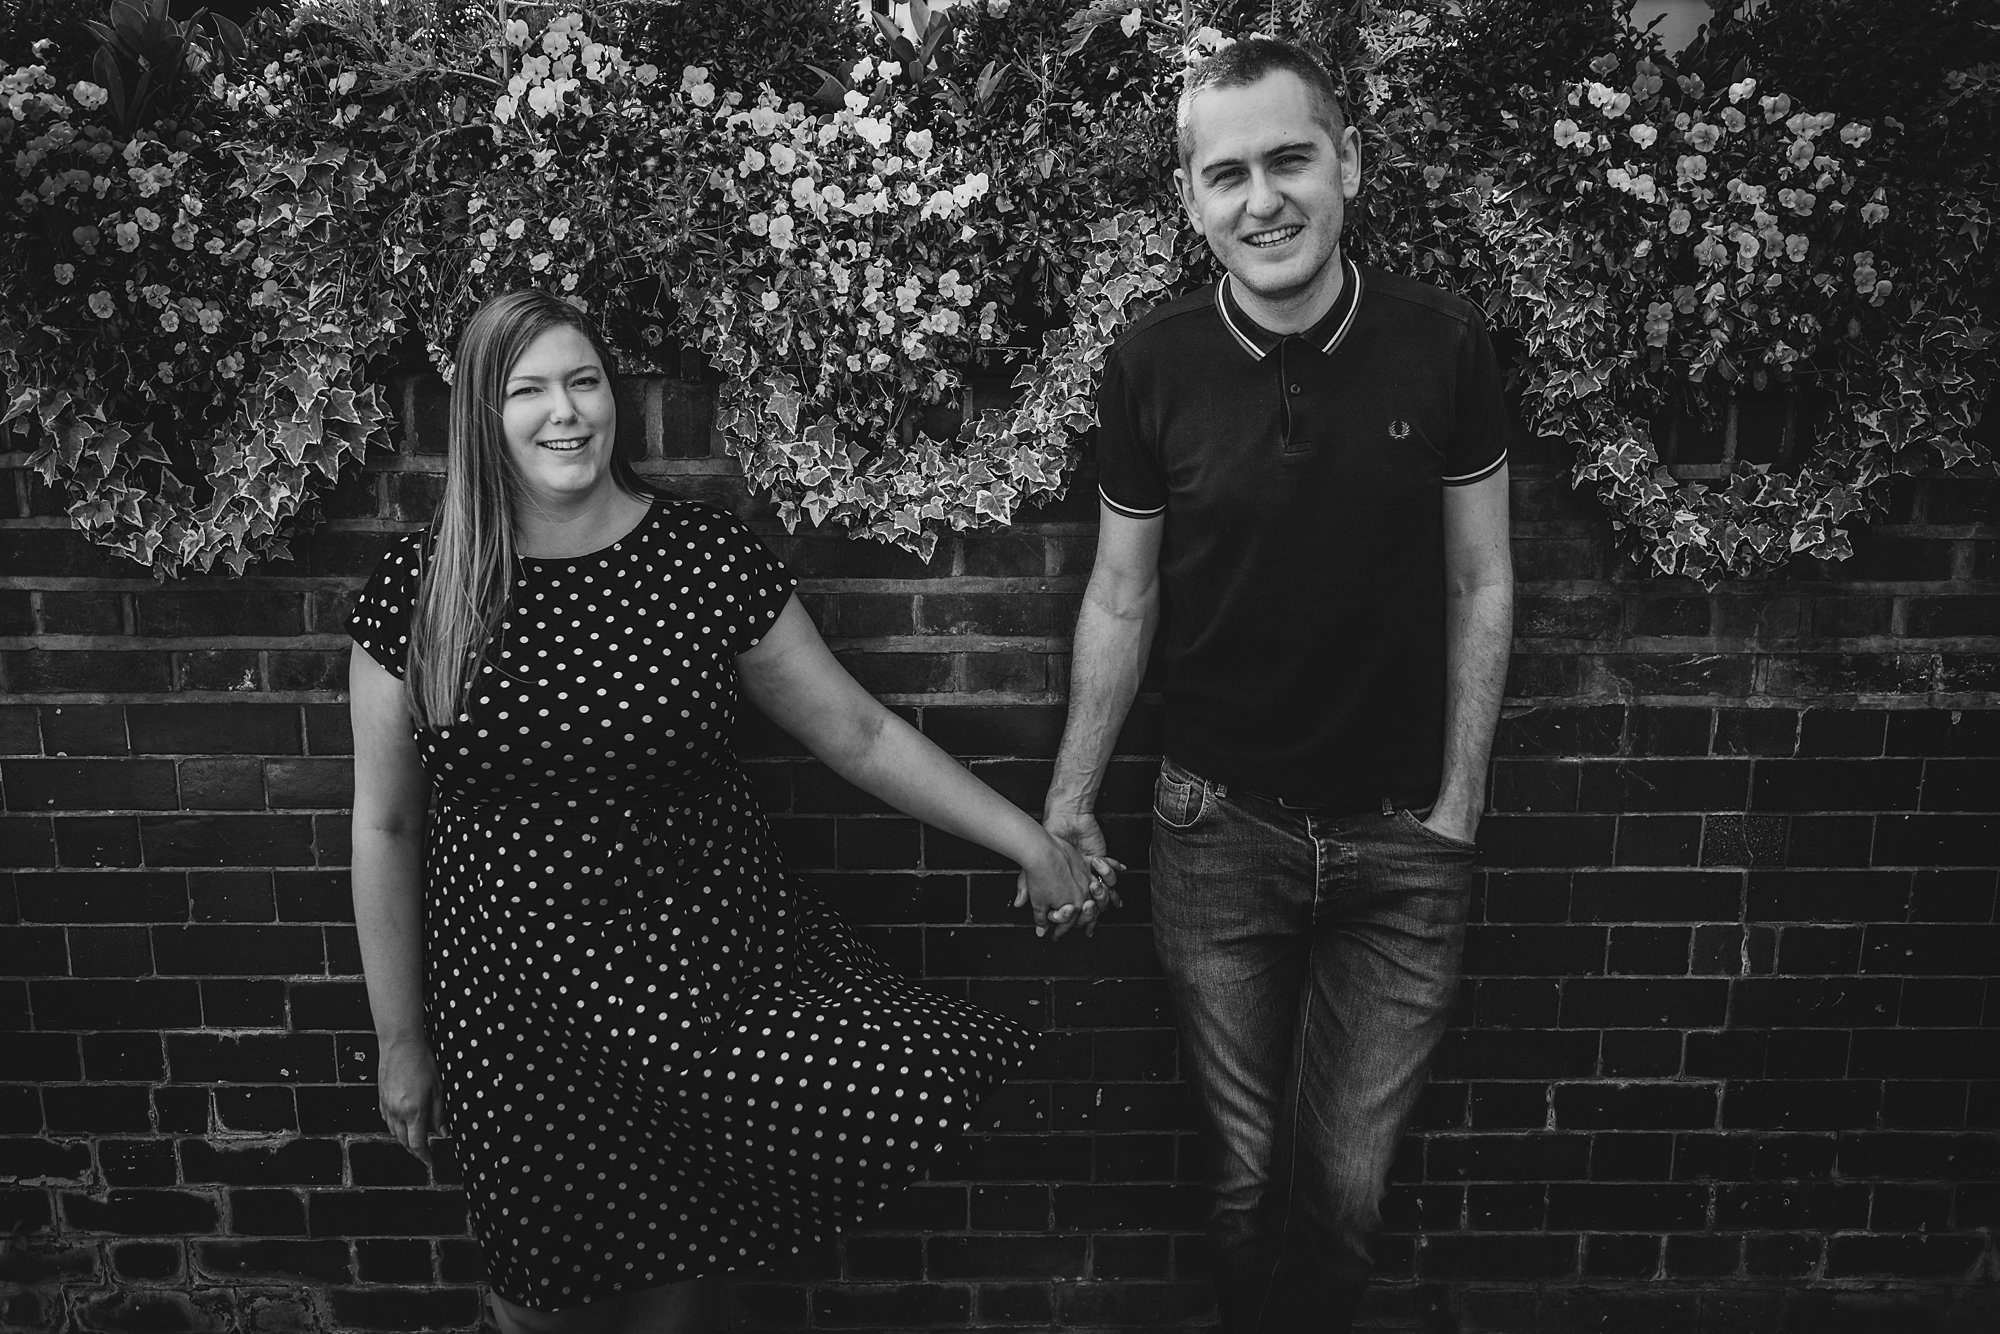 london engagement photographer strand on the green hj 012 - Hannah + Joe | Strand on the Green Engagement Photography